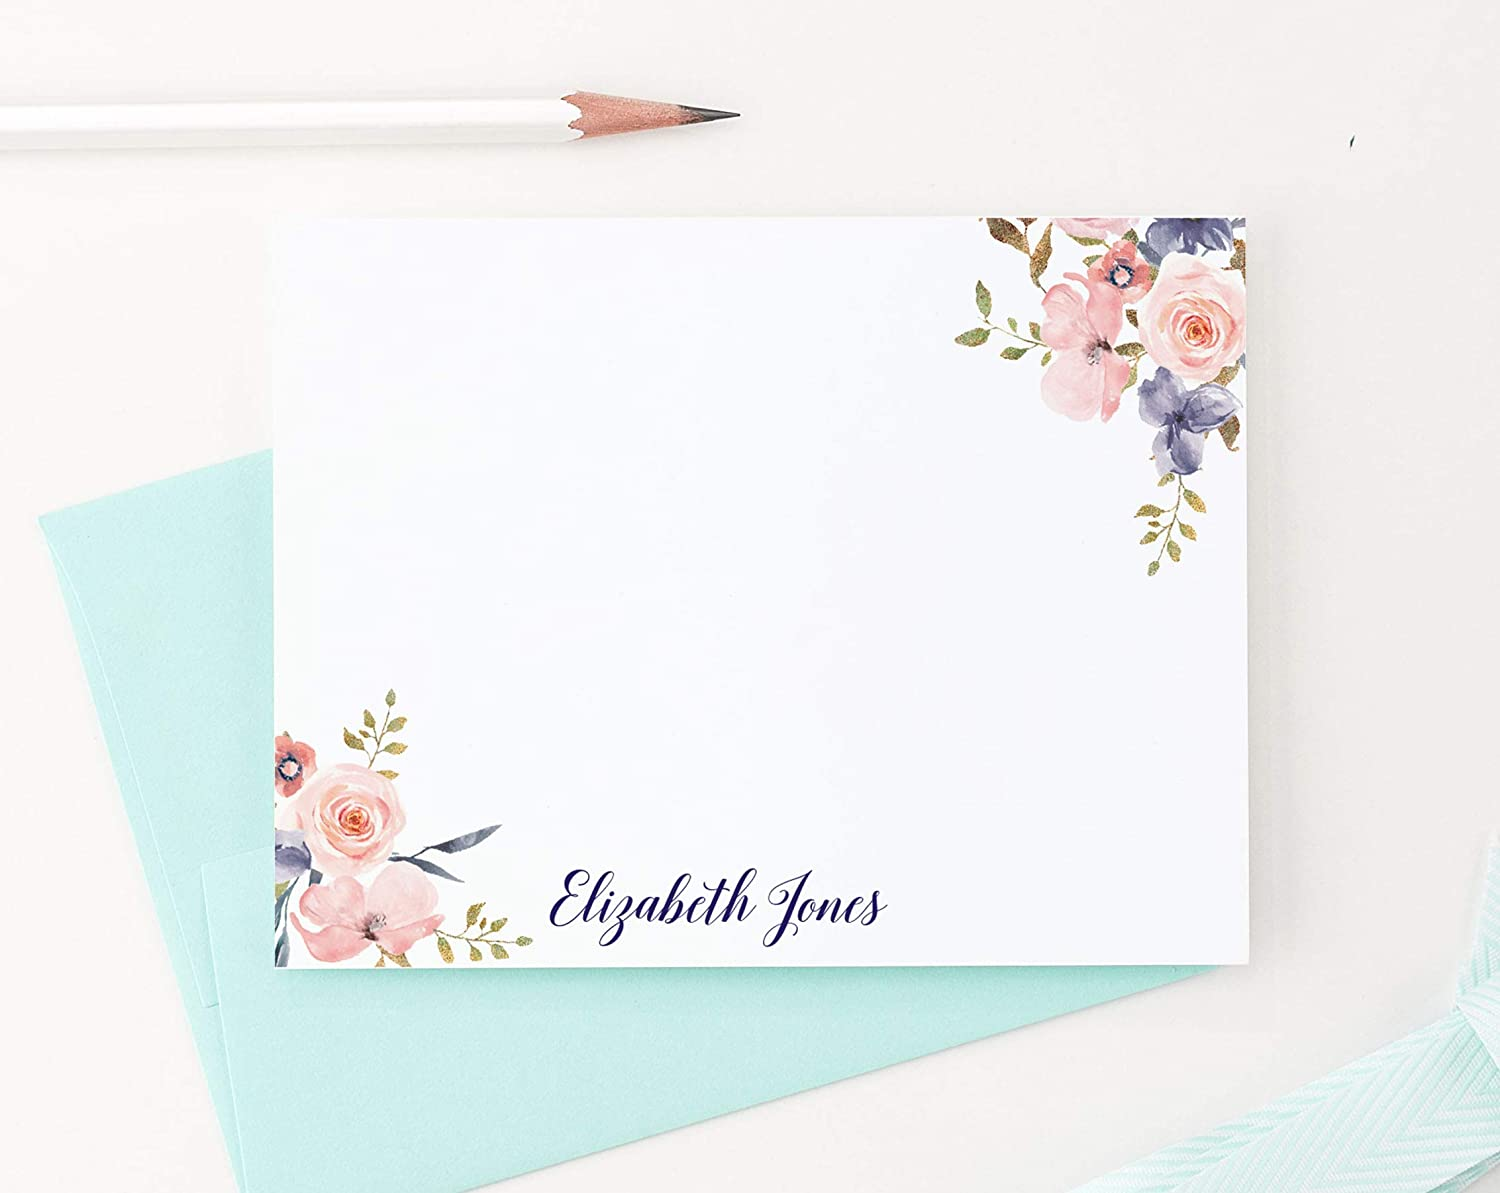 Stationary Personalized Floral Thank you Cards PERSONALIZED STATIONERY SET Personalized Feminine custom stationery Mother/'s Day gift